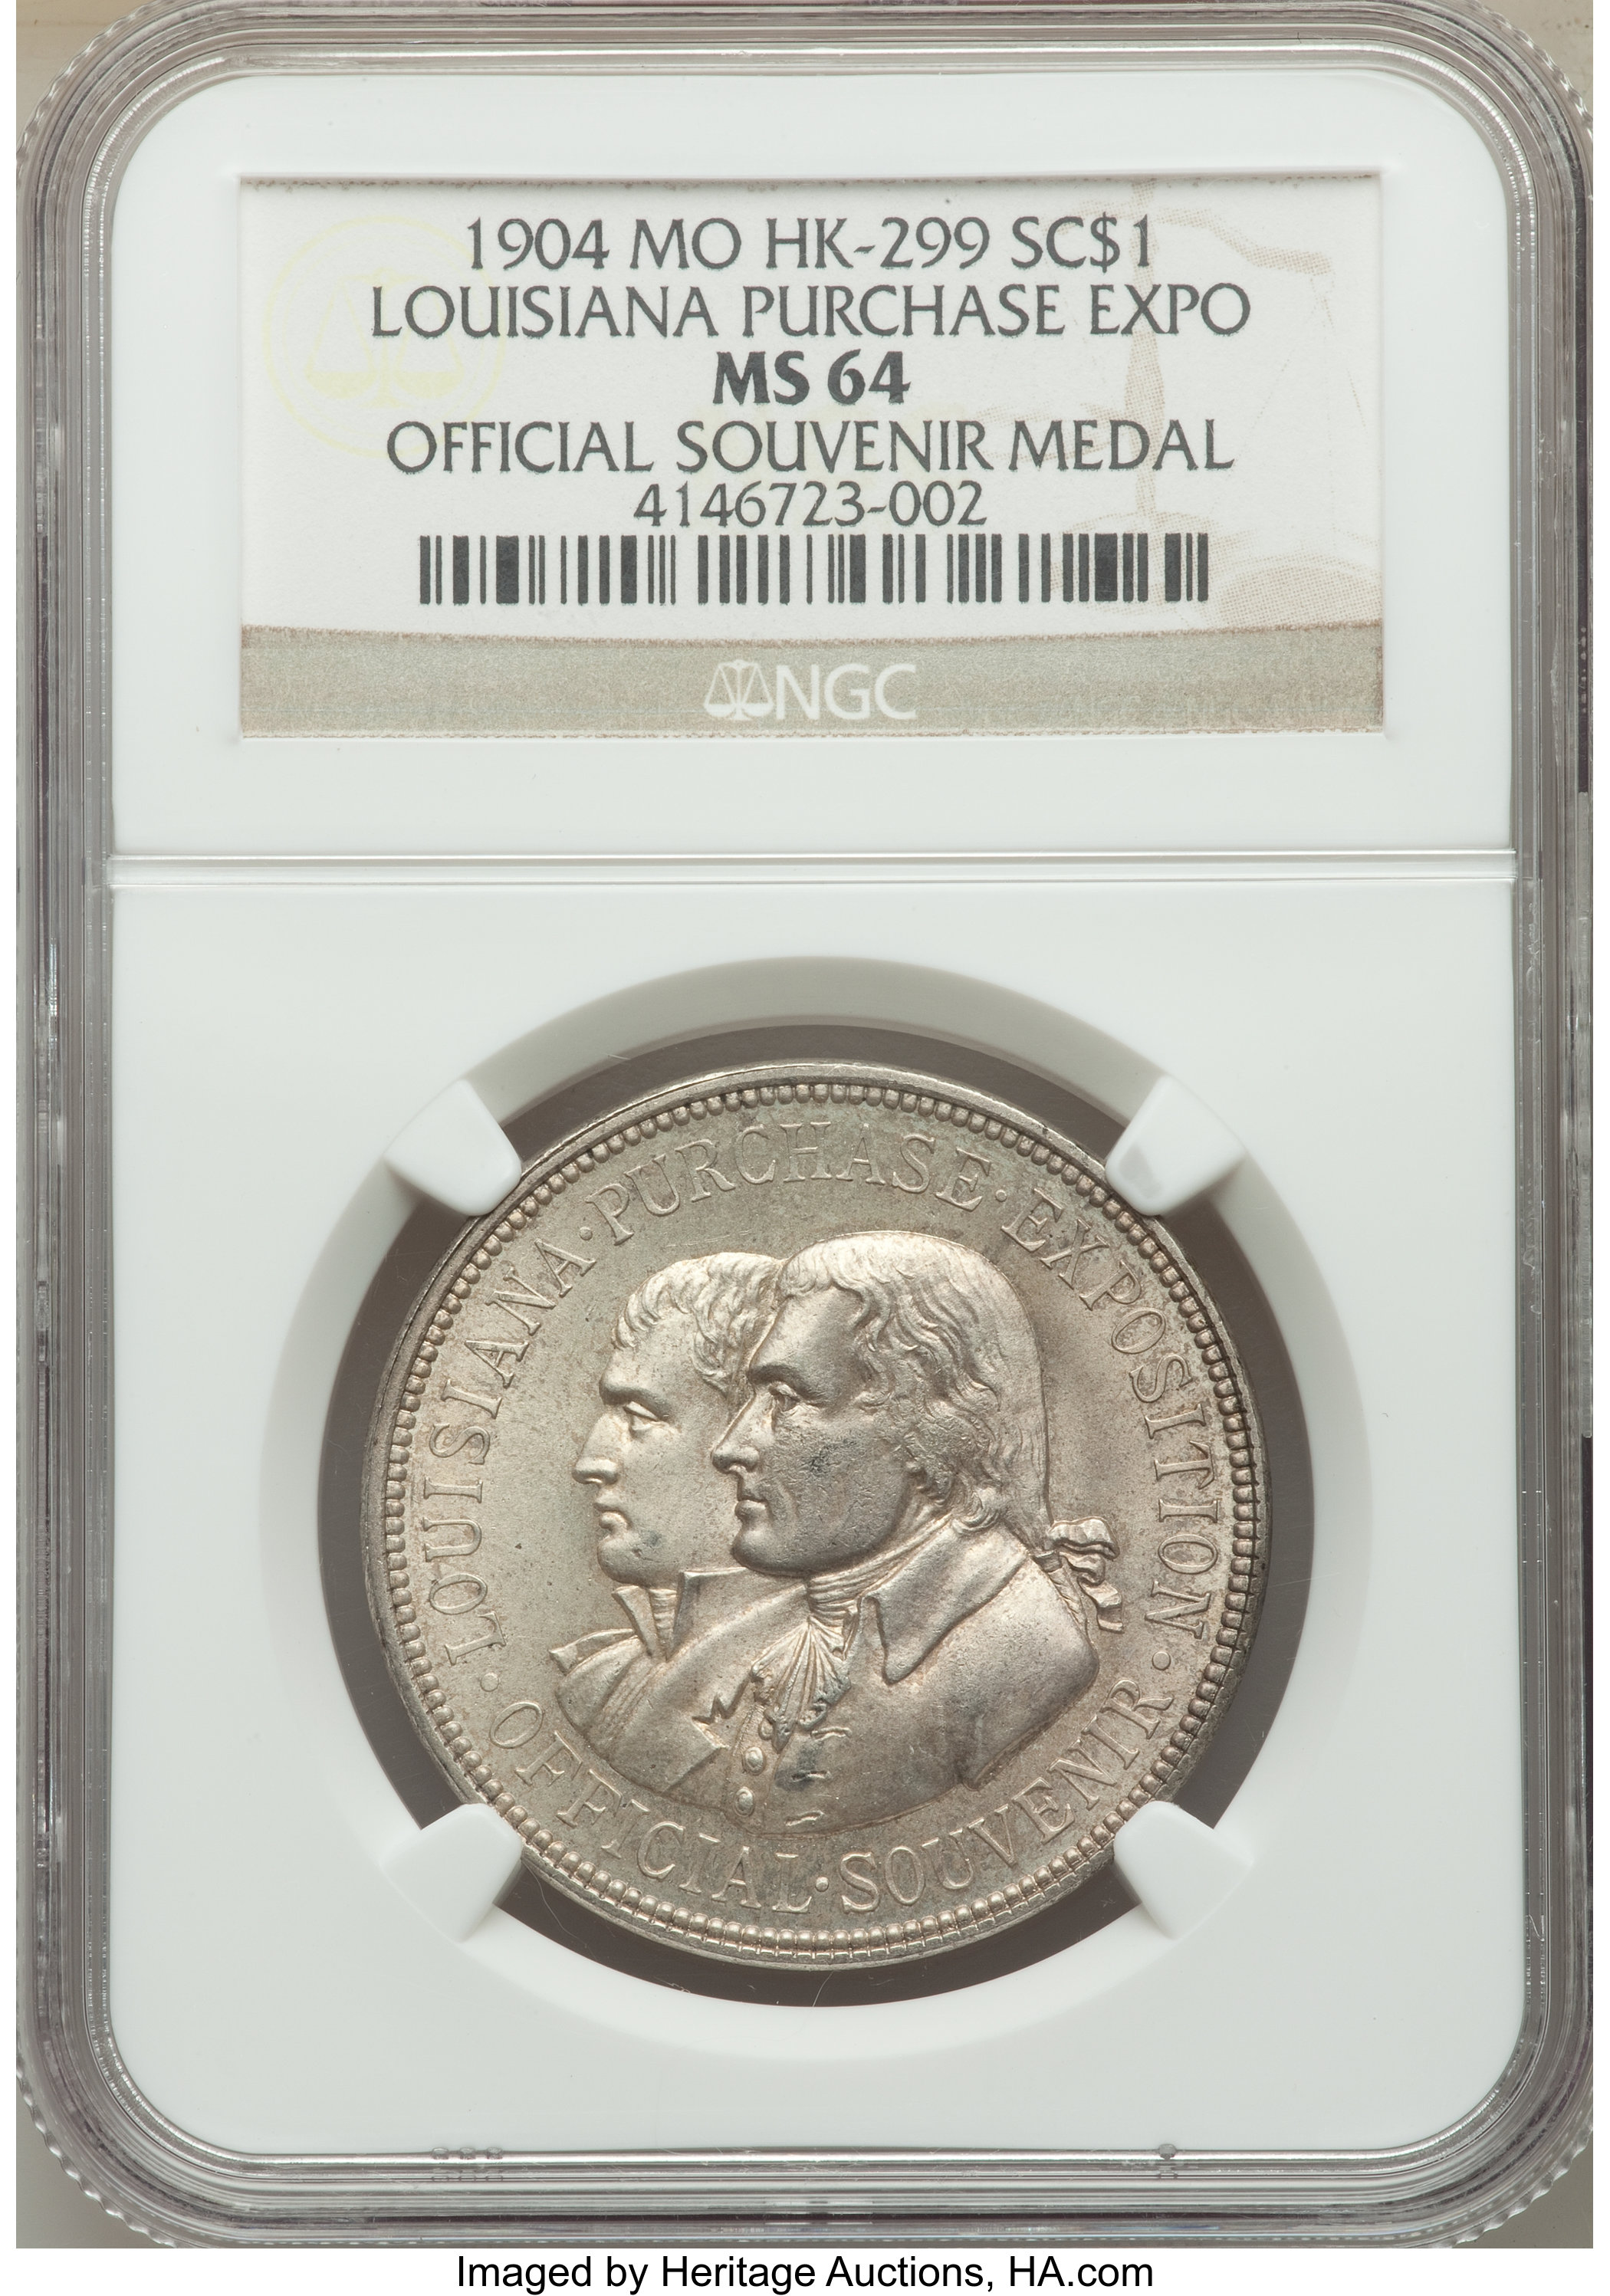 sample image for 1904 LA Purchase Expo, Official, Silver SC$1 MS (HK-299)